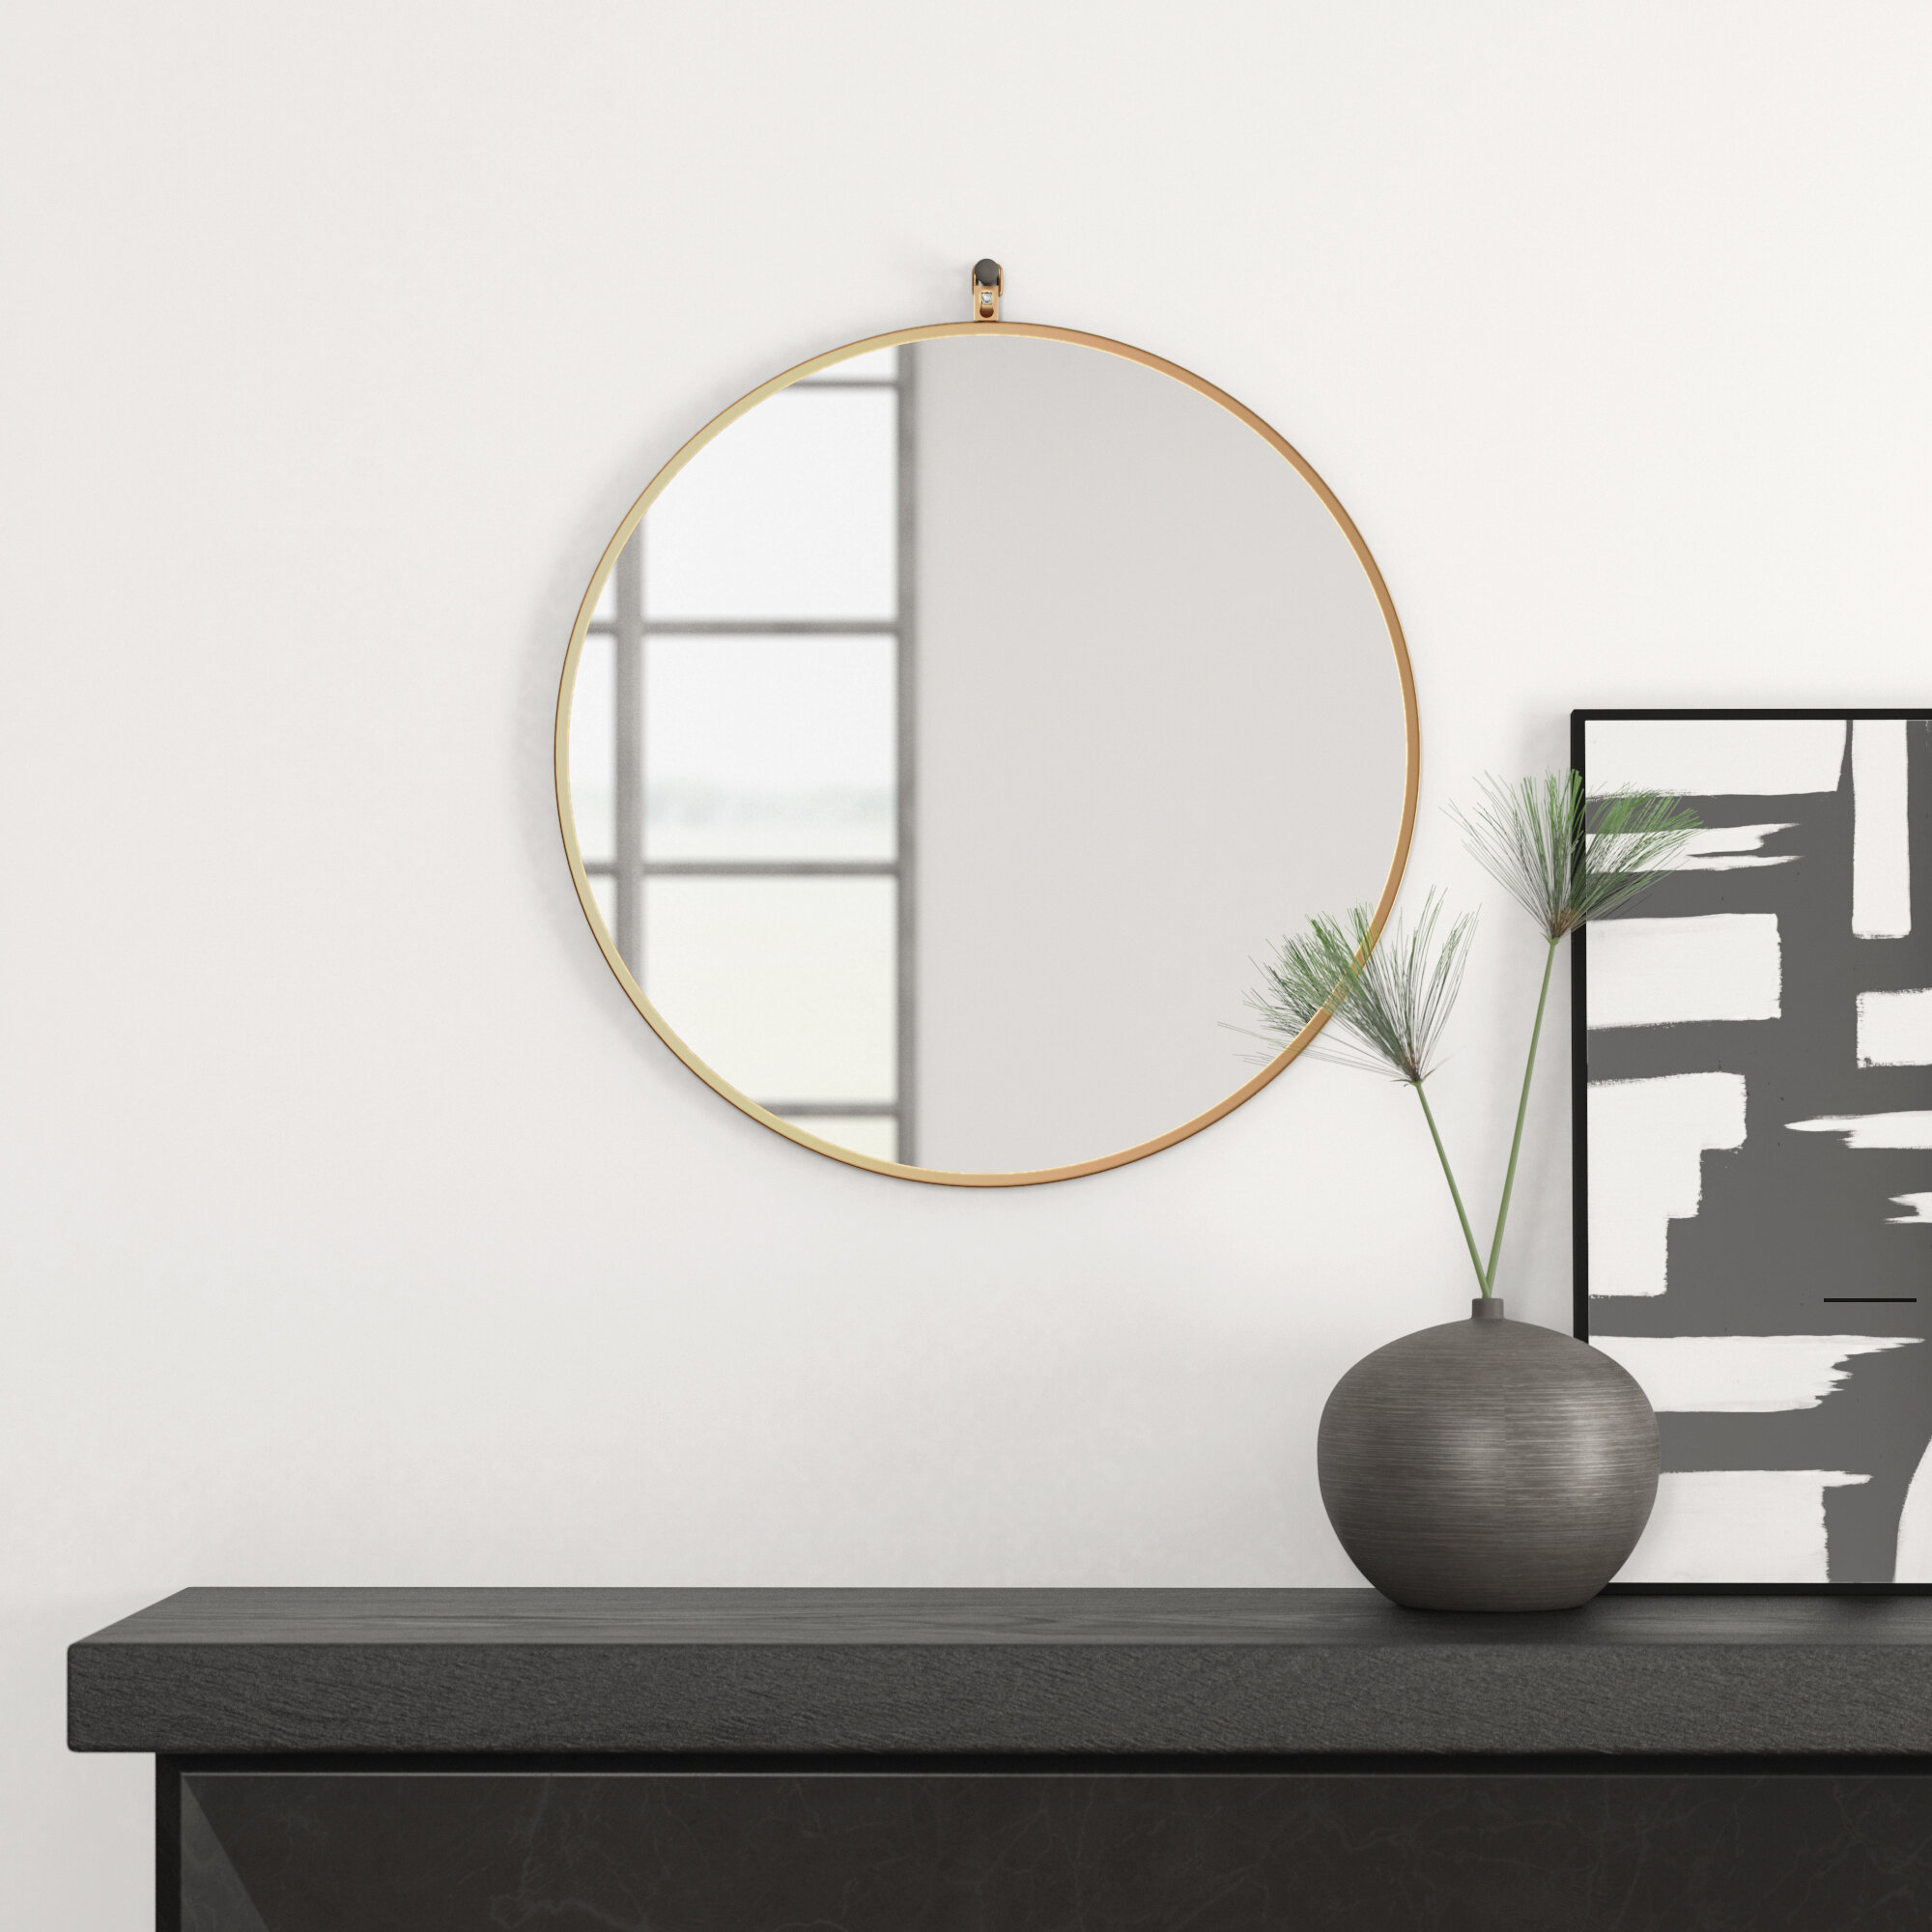 Modern & Contemporary Framed Bathroom Mirrors | Allmodern Pertaining To Landover Rustic Distressed Bathroom/vanity Mirrors (View 11 of 20)